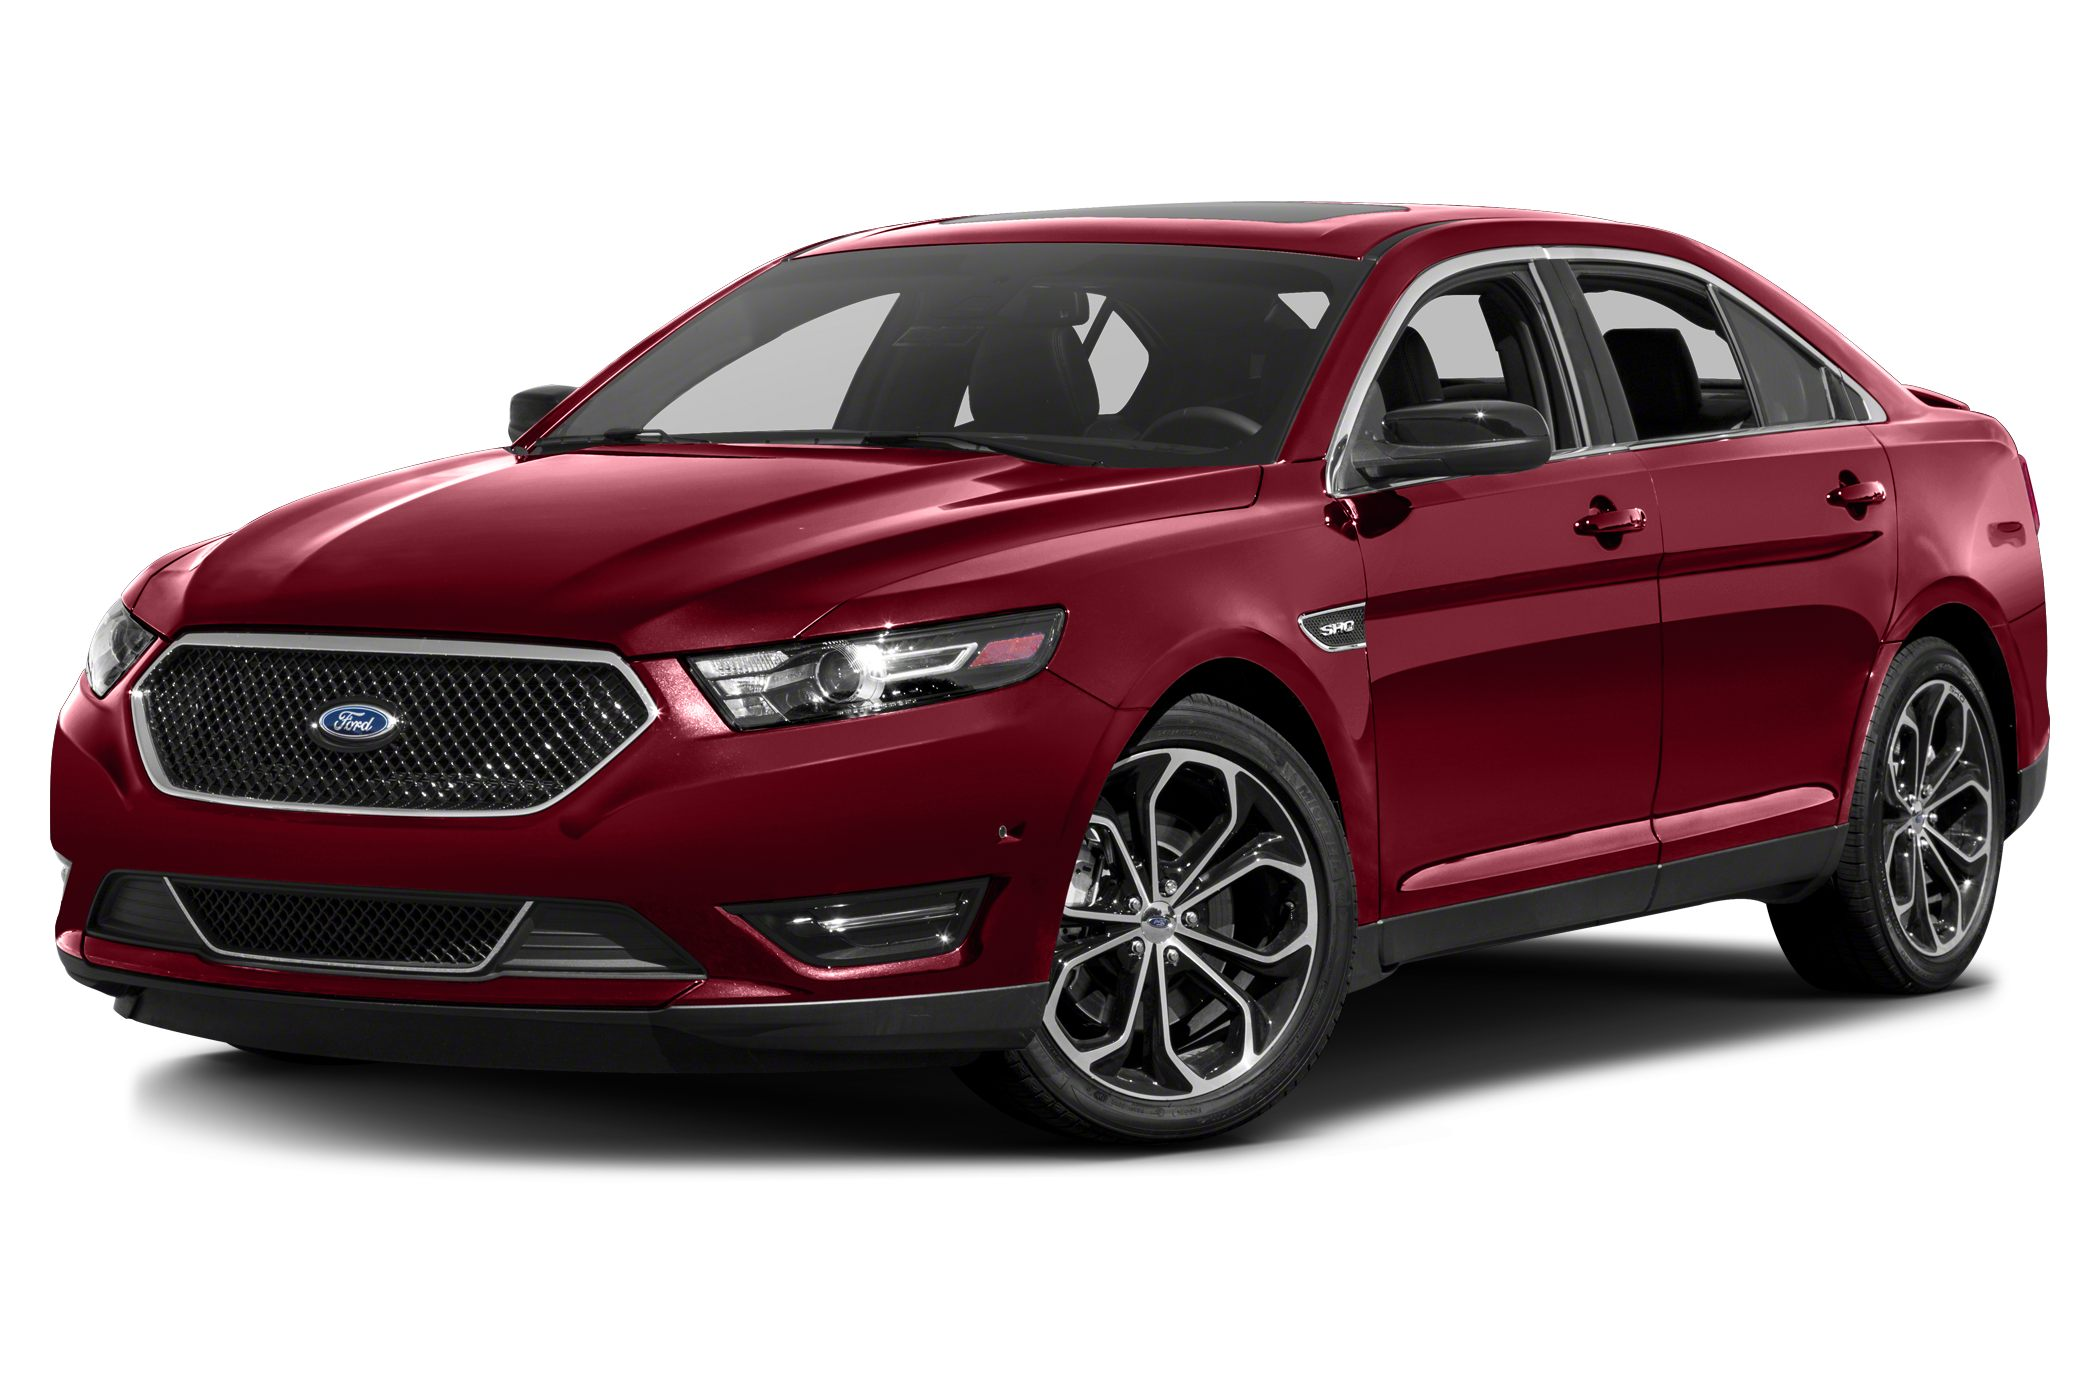 2015 Ford Taurus SHO The Ford Taurus has aggressive front and rear styling that signals a high lev